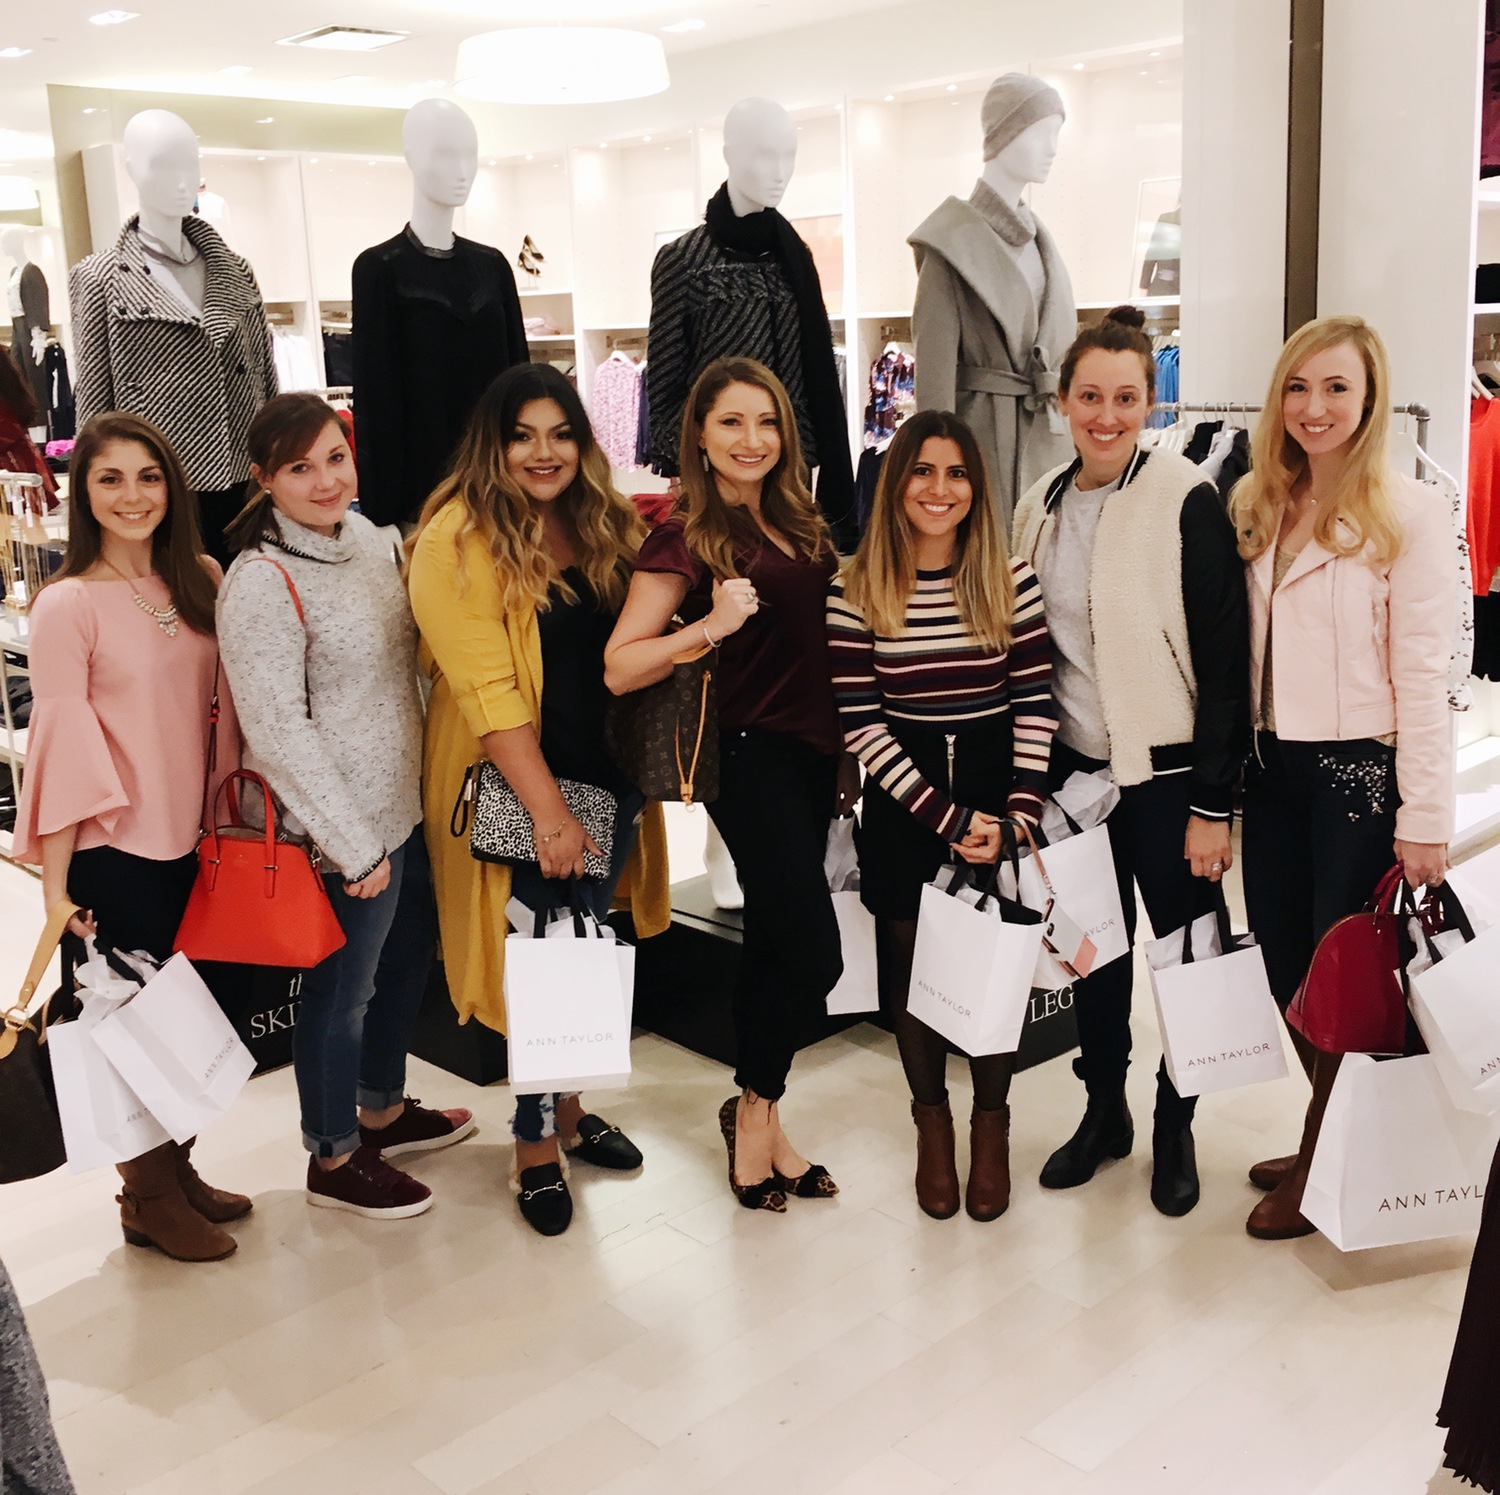 Ann Taylor Short Hills NJ Style Collective Blogger Meetup